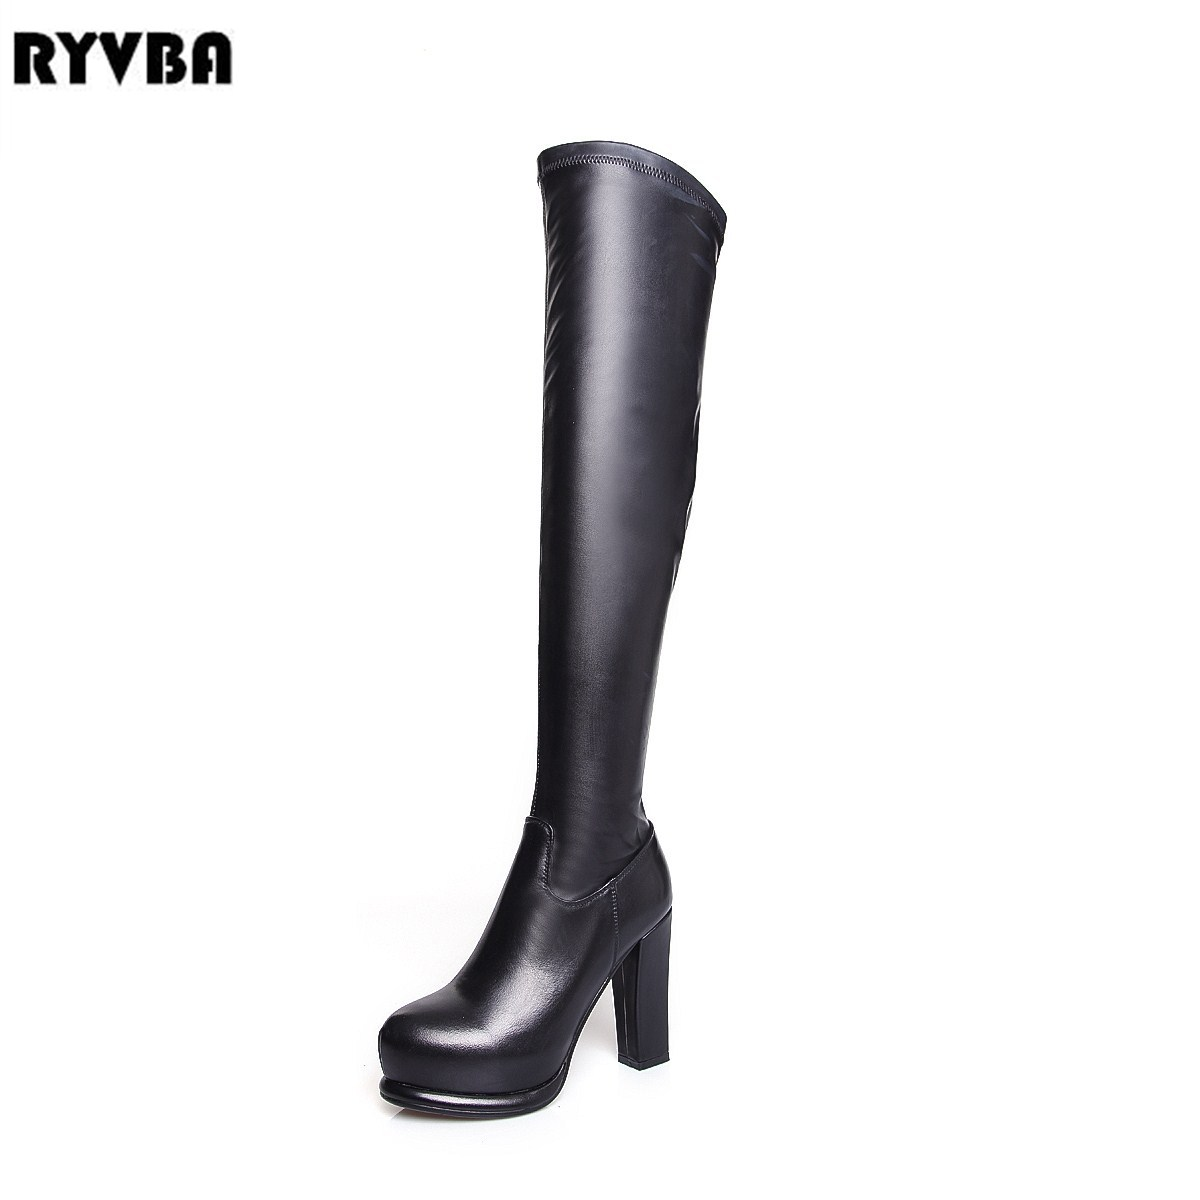 RYVBA Women over the knee boots Fashion Genuine Leather PU Winter thigh high boots high heels Woman Platform Round toe shoes memunia big size 34 43 over the knee boots for women fashion shoes woman party pu platform boots zip high heels boots female